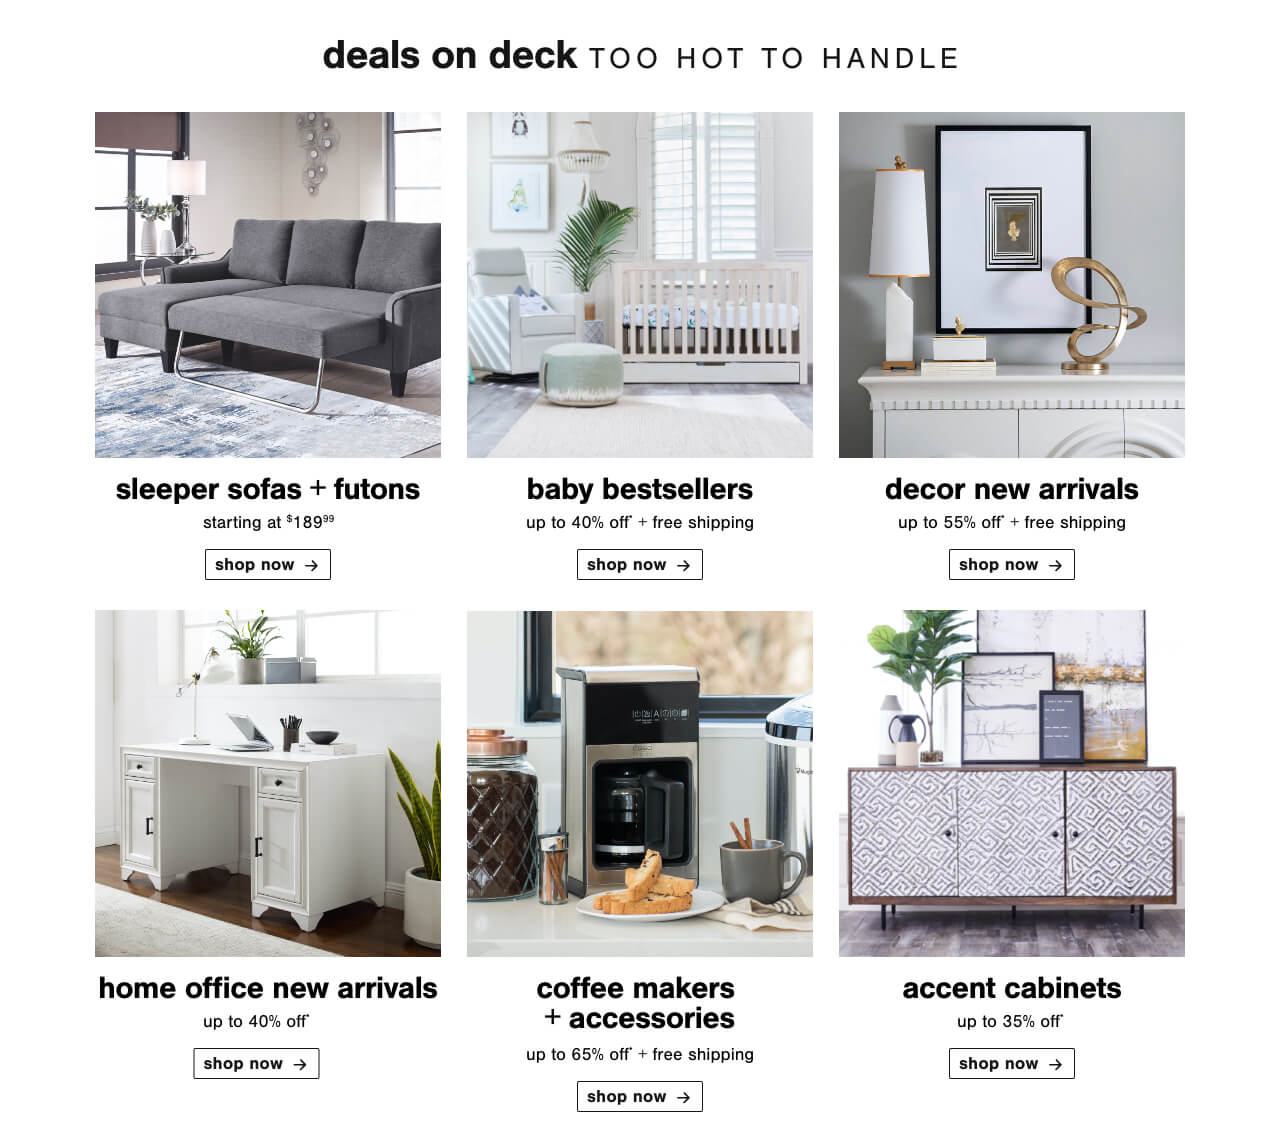 Sleeper Sofas & Futons Starting at $189.99, Best of Baby - Baby Best Sellers Up to 40% Off + Free Shipping  , Decor New Arrivals up to 55% Off + Free Shipping, Home Office New Arrivas up to 40% Off, Coffee Makers & Accessories- up to 65% Off + Free Shipping, Accent Cabinets Up To 35% Off